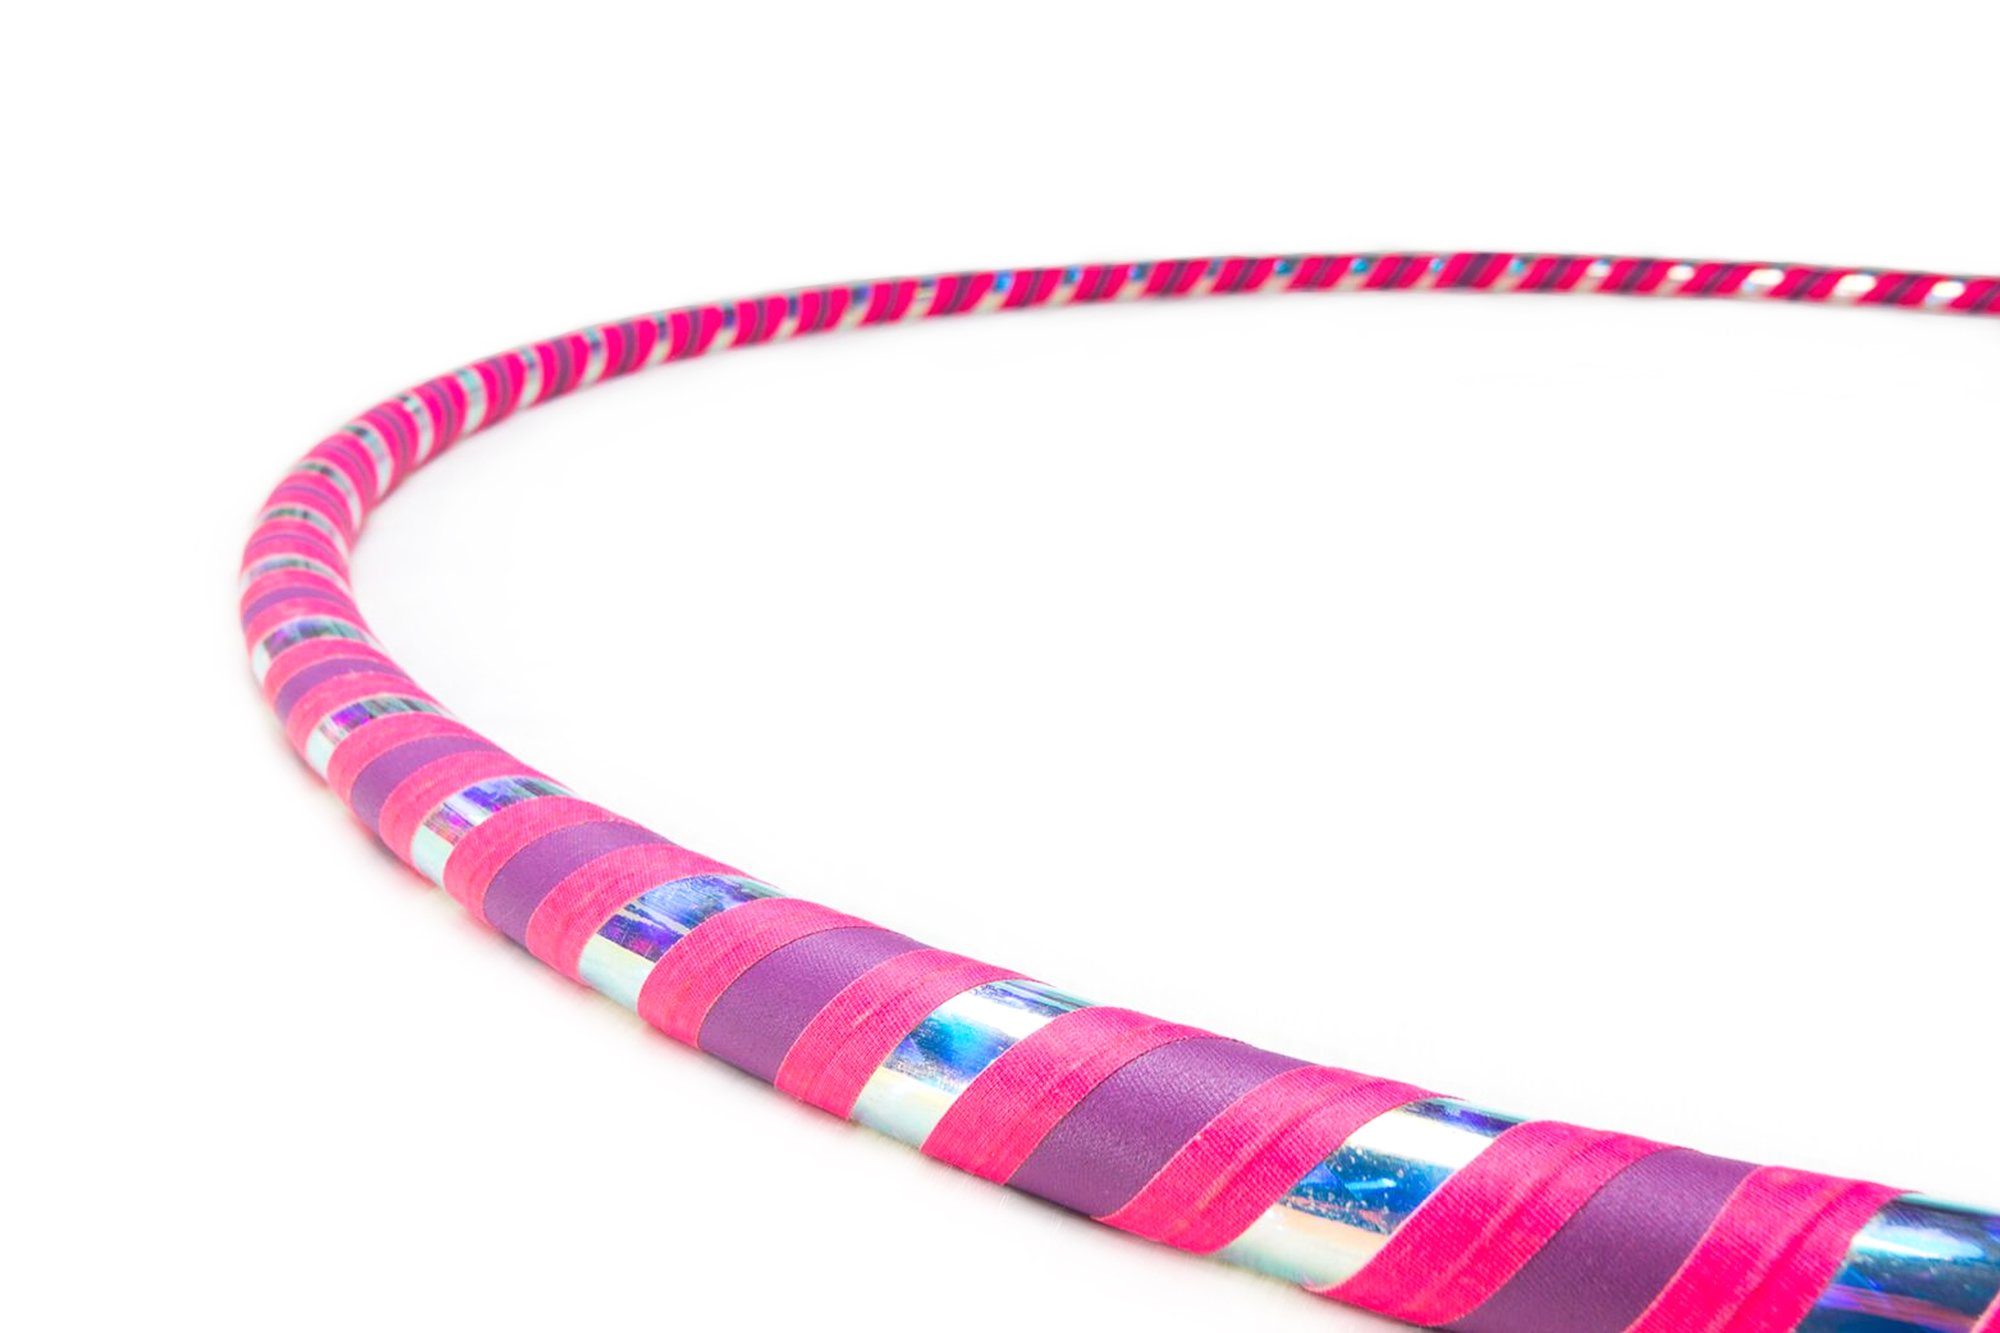 The Spinsterz Adult Beginner Hula Hoop (Bubble Yum, Small - 36'' Diameter)